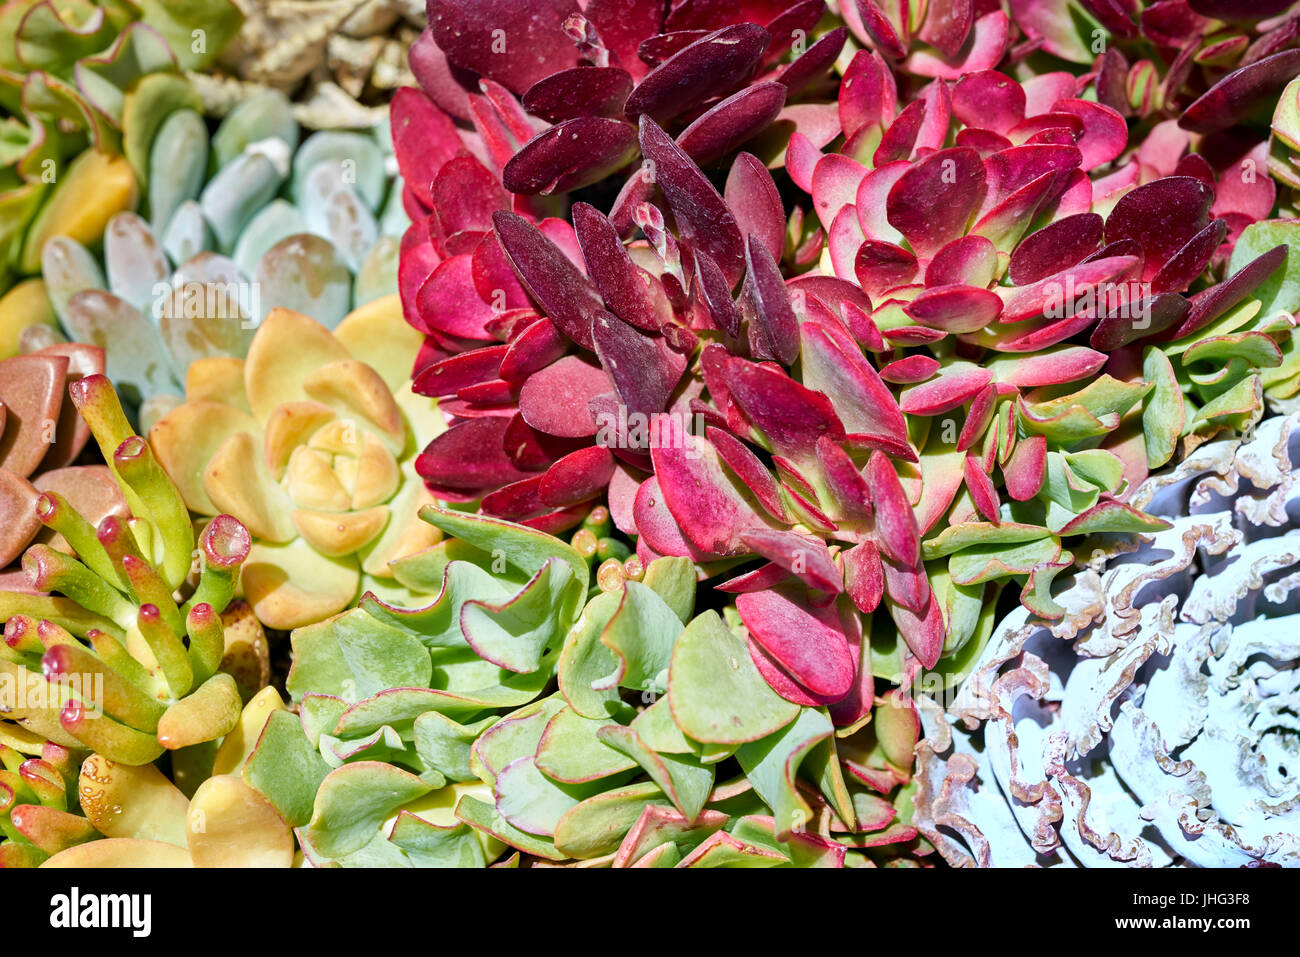 Variety of succulents in a drought-tolerant environment - Stock Image